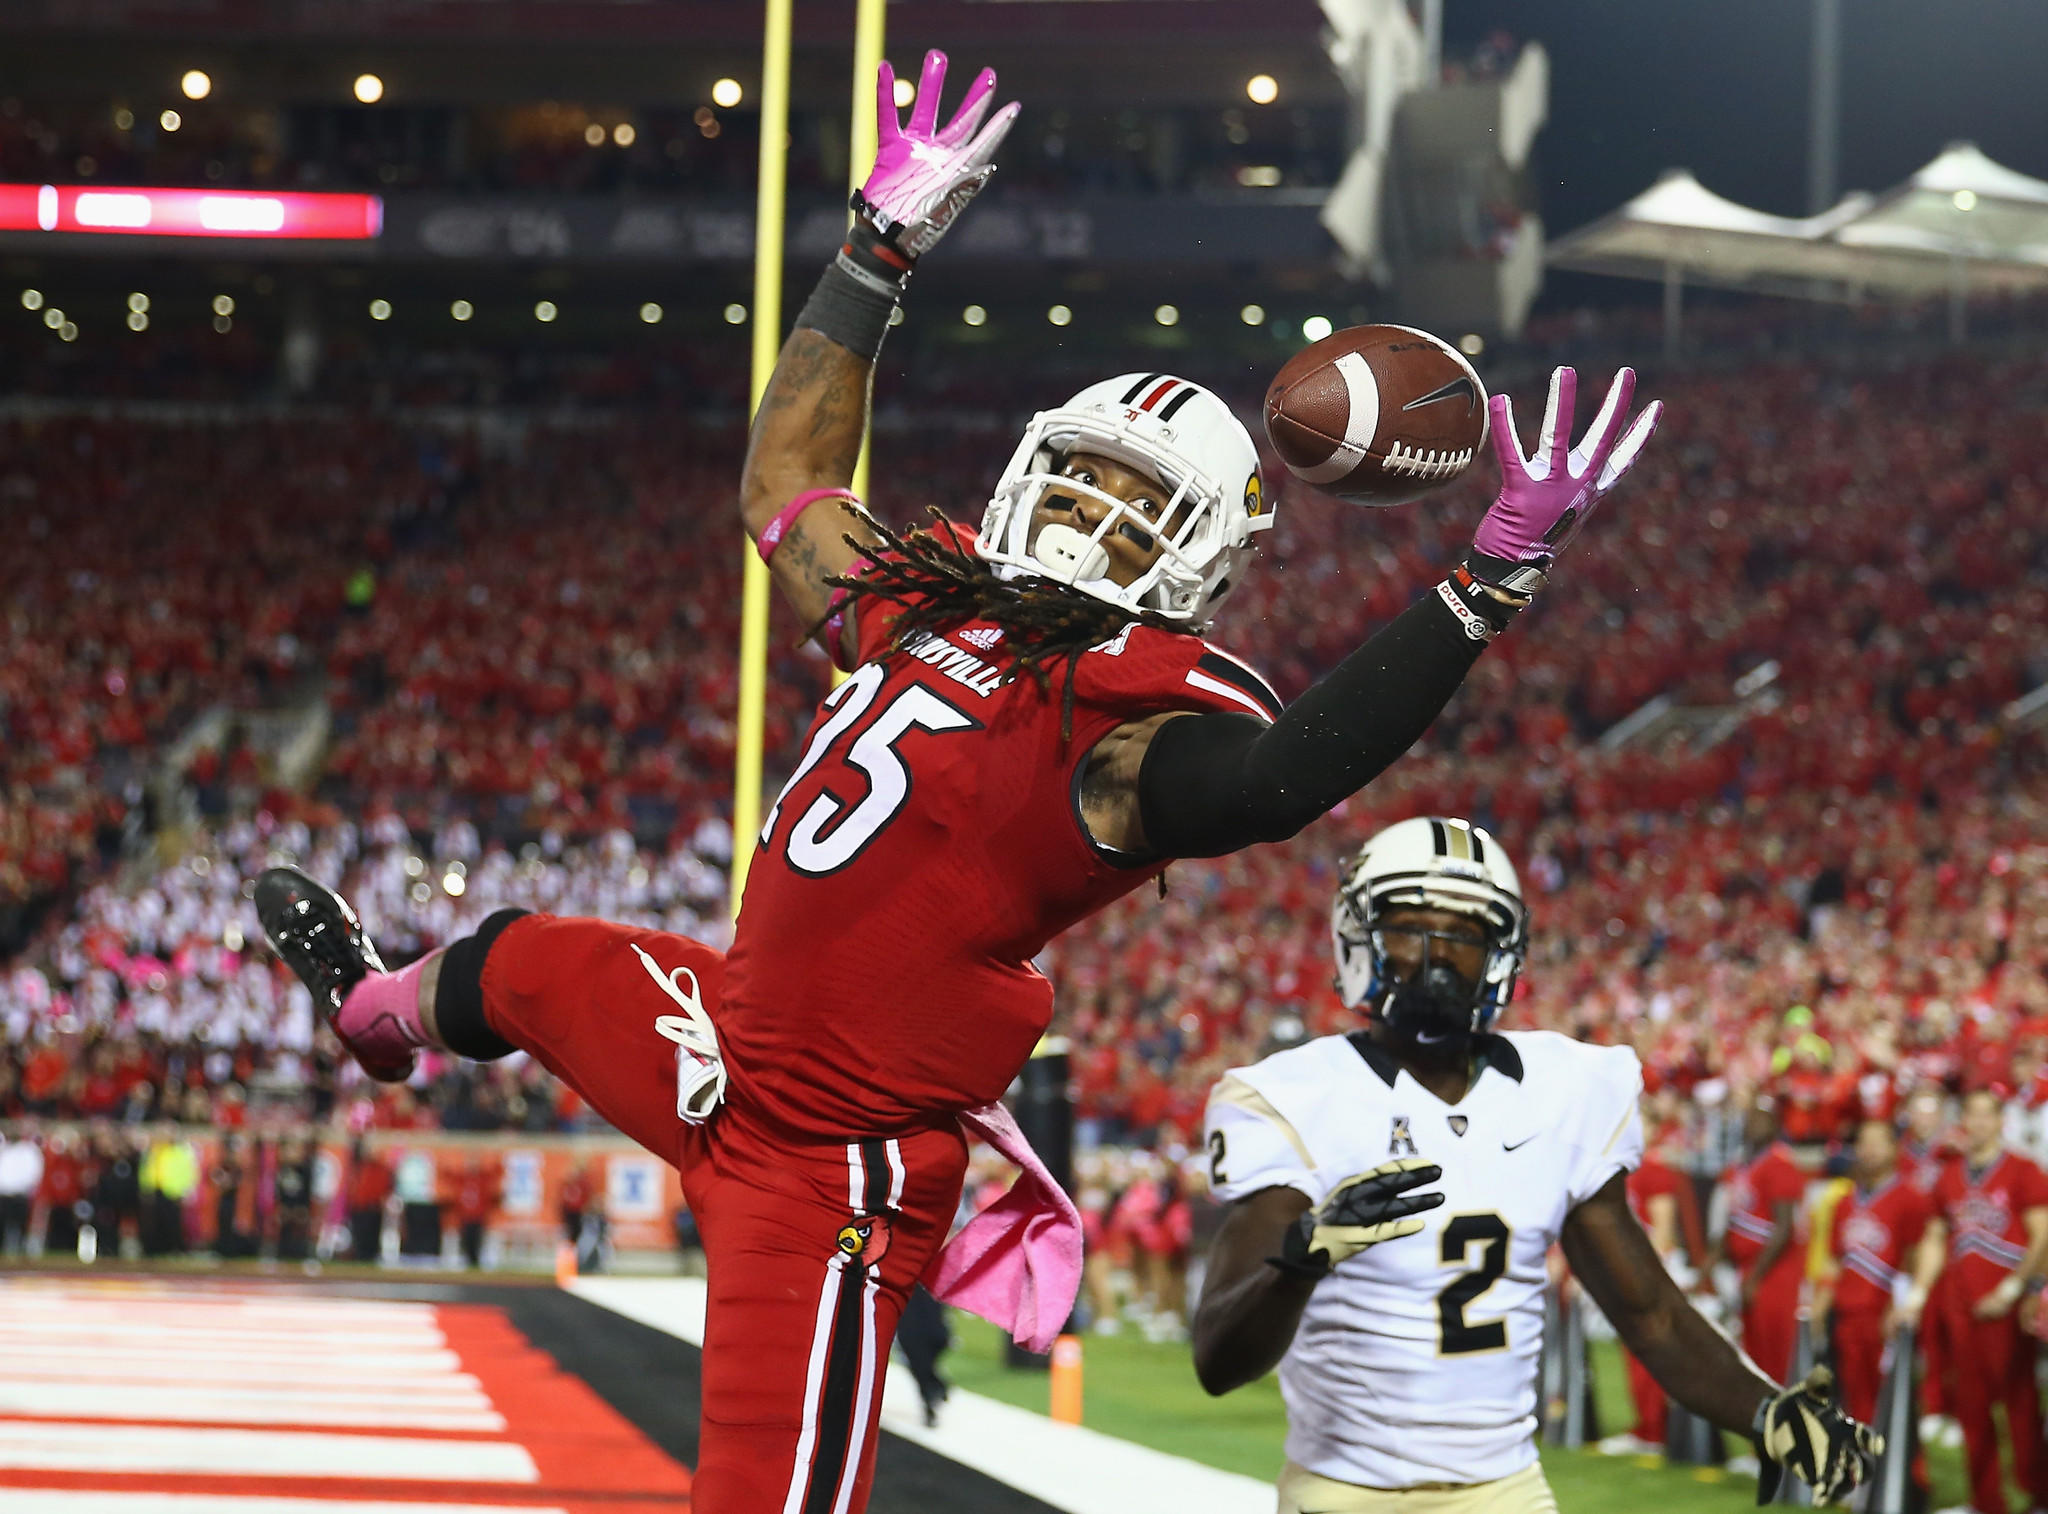 Louisville's Calvin Pryor intercepts a pass in the end zone against Central Florida.